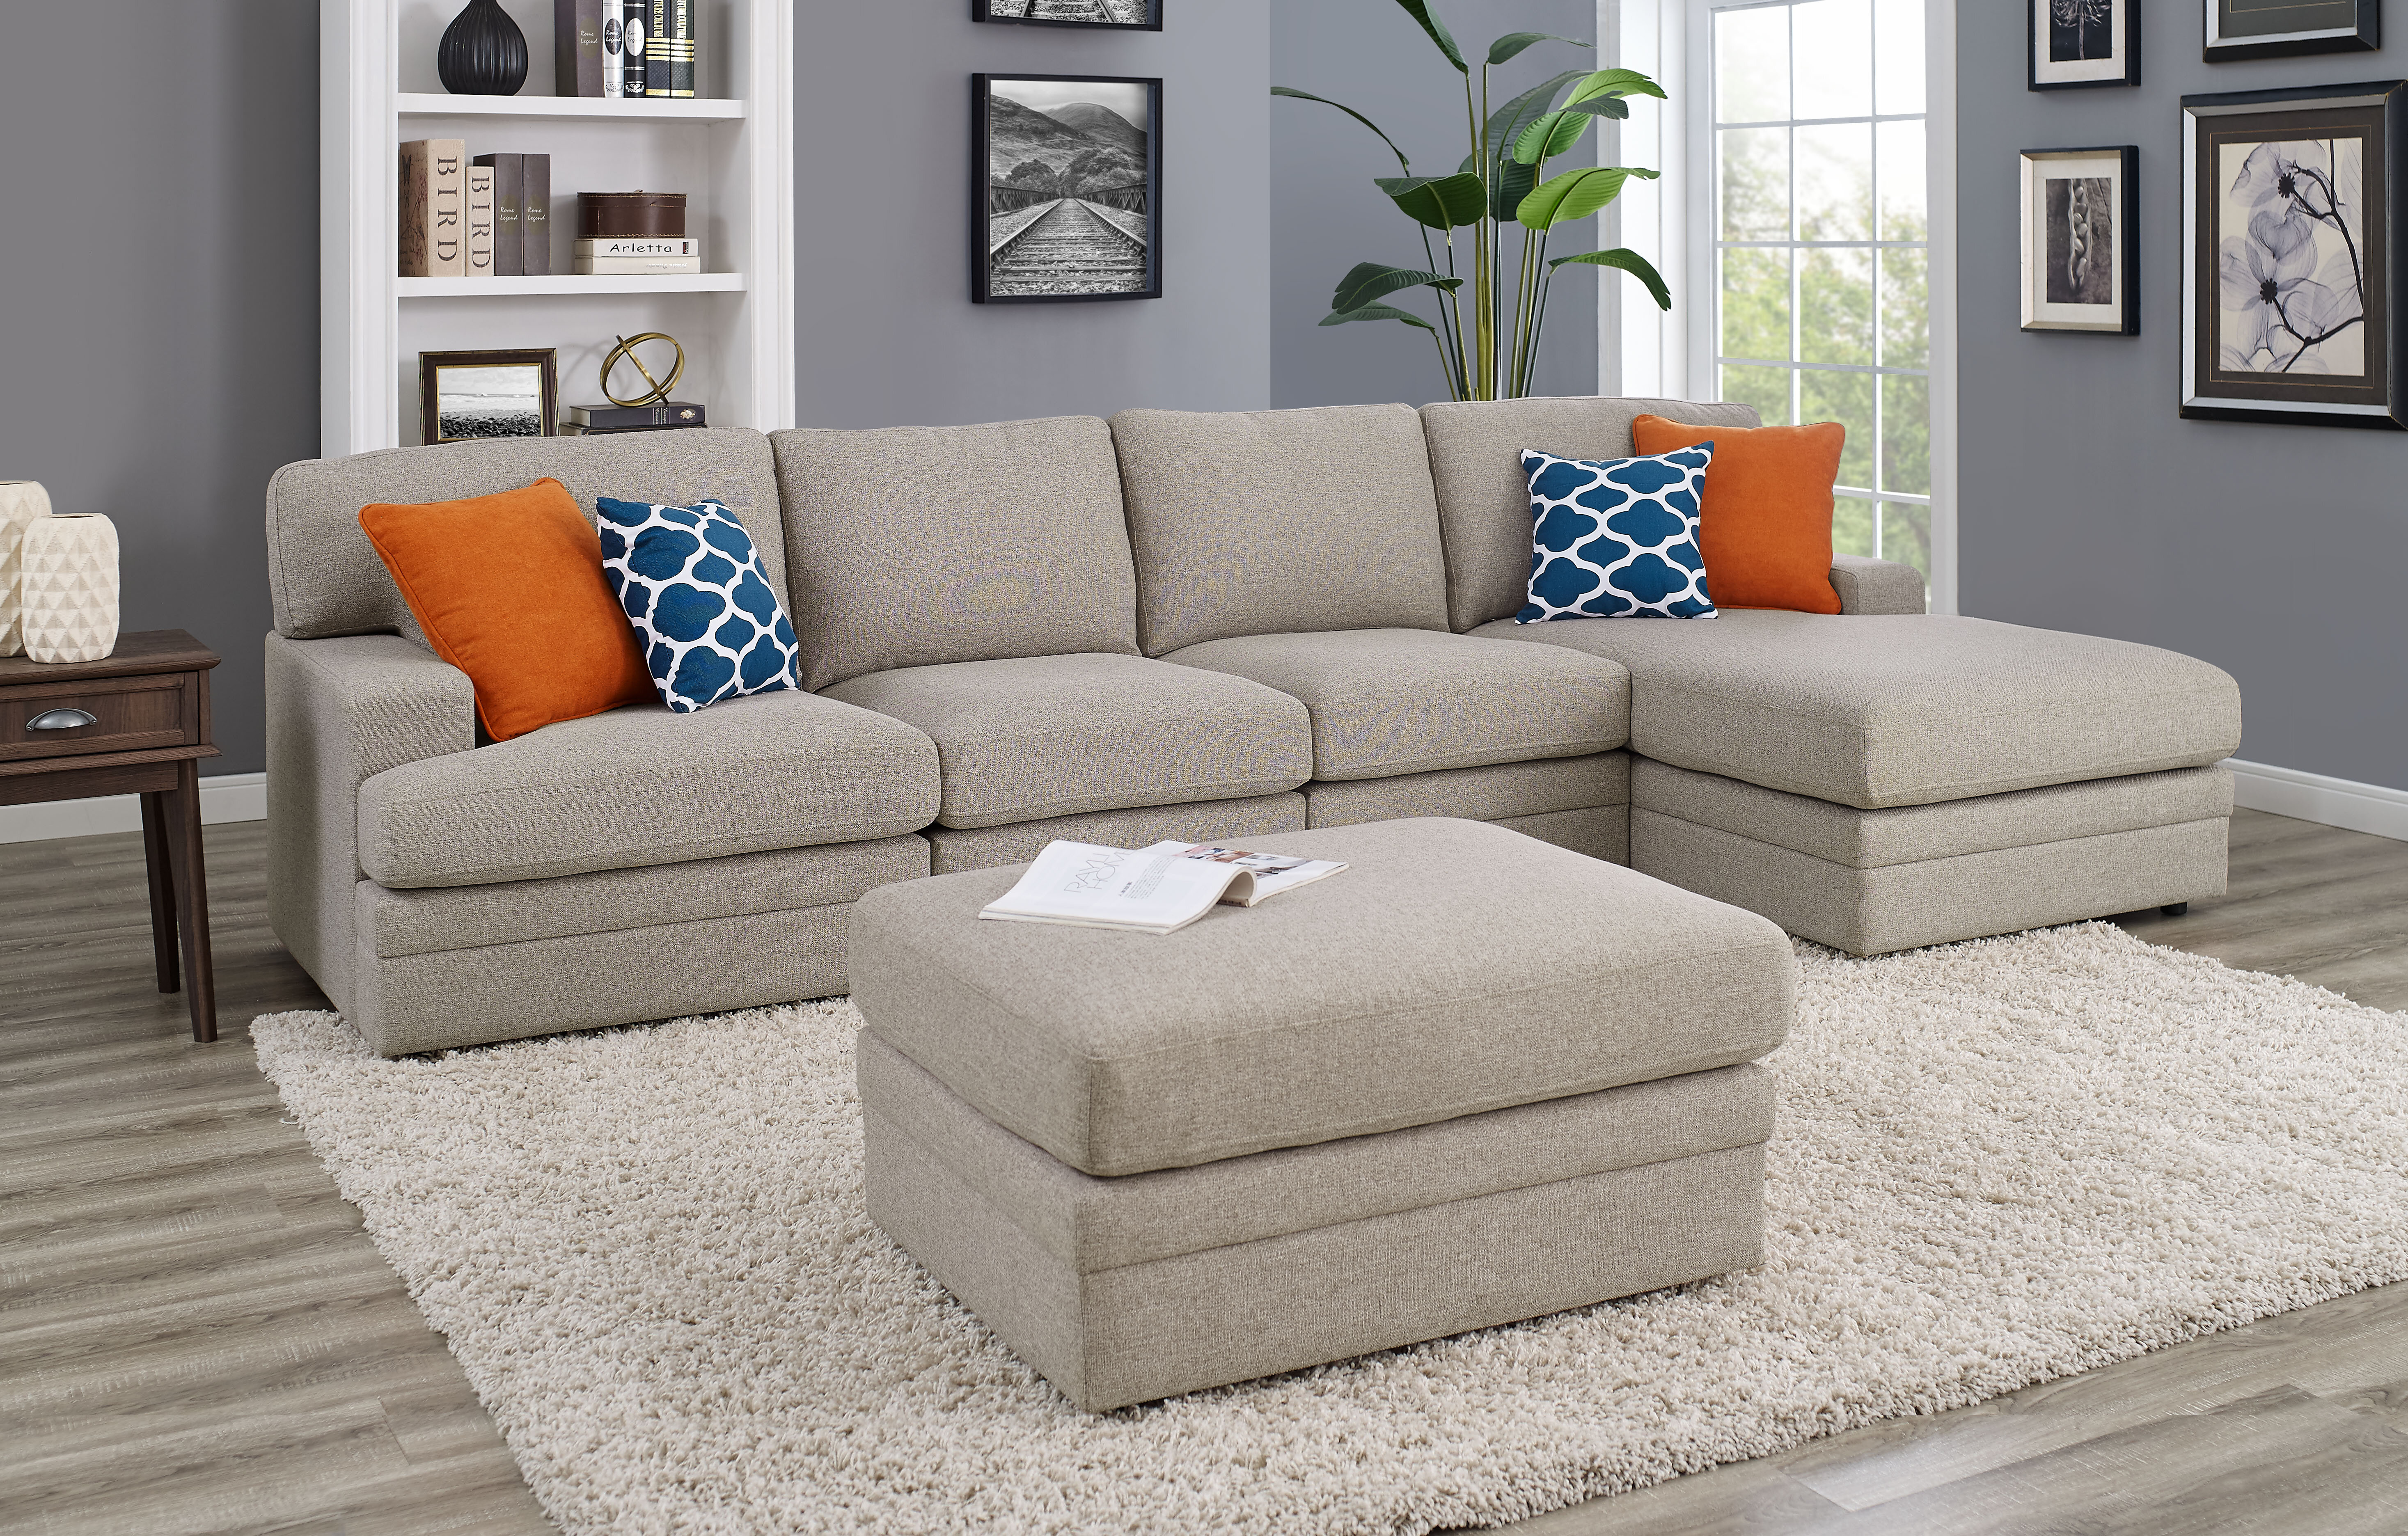 Episkopi 4 Seater Large Right hand facing Sectional Sofa With Ottoman